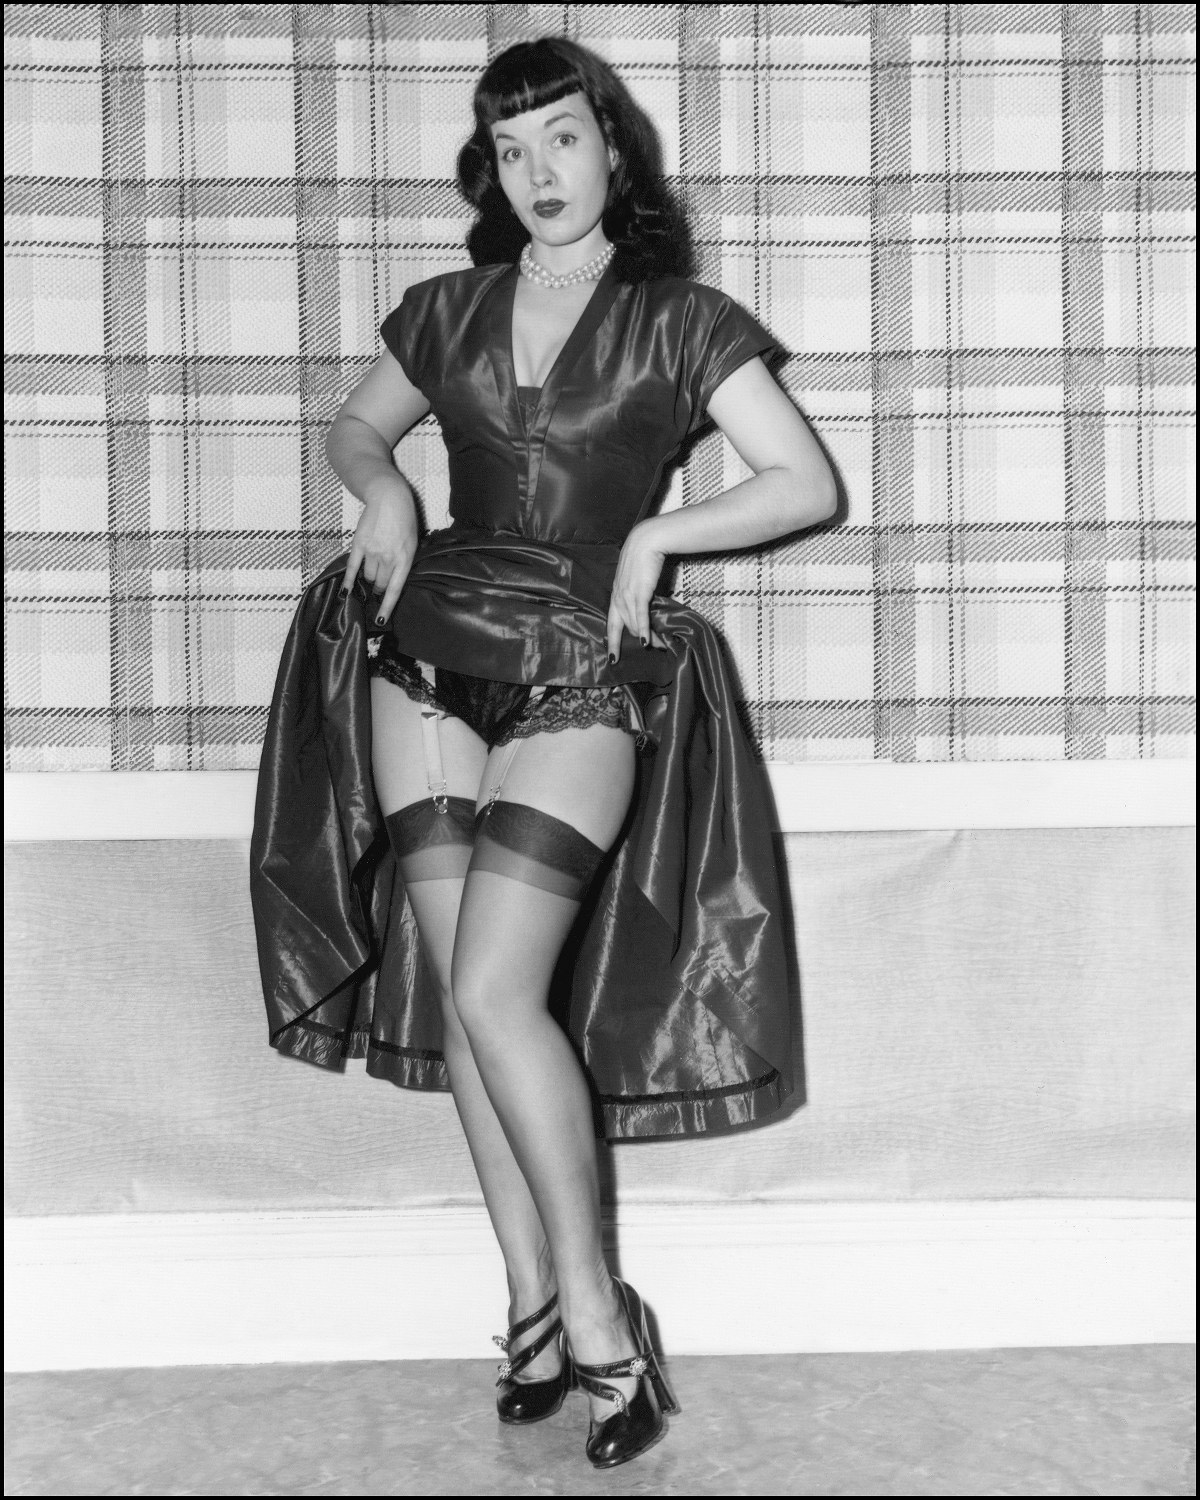 Betty Page Photos: Happy Birthday Bettie!